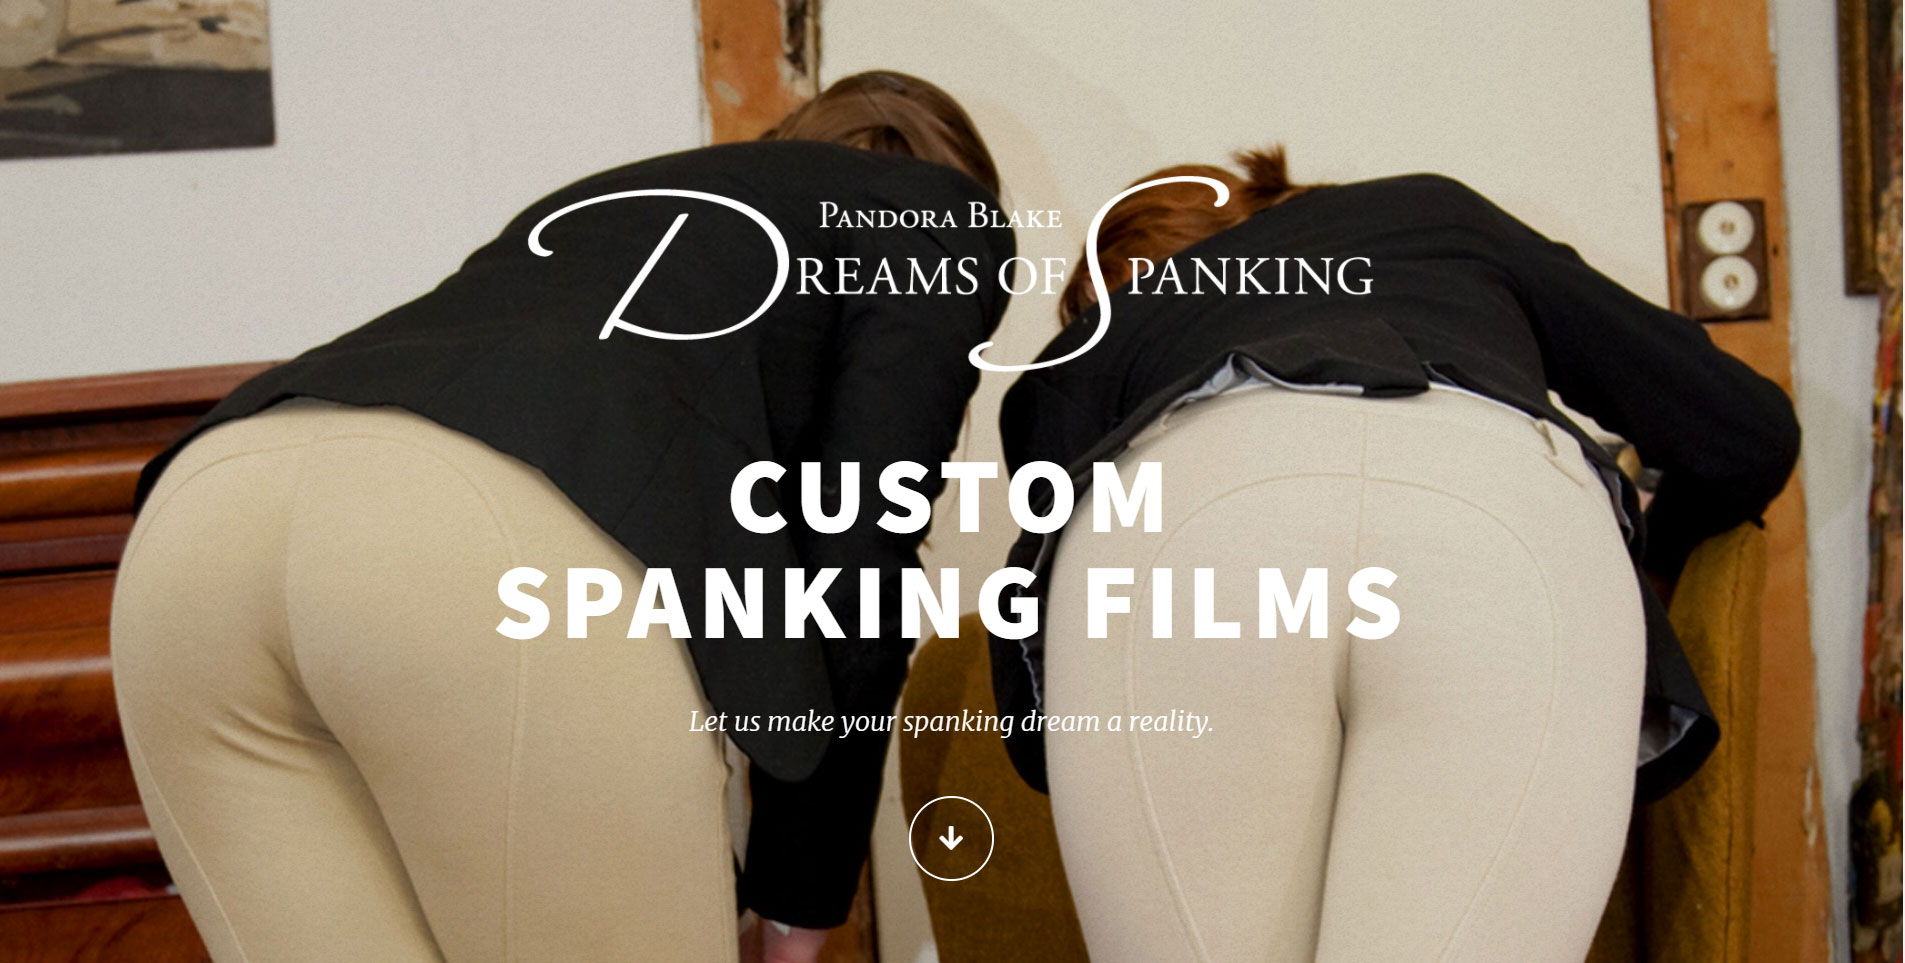 Custom spanking films by Dreams of Spanking - let us make your spanking dream a reality.